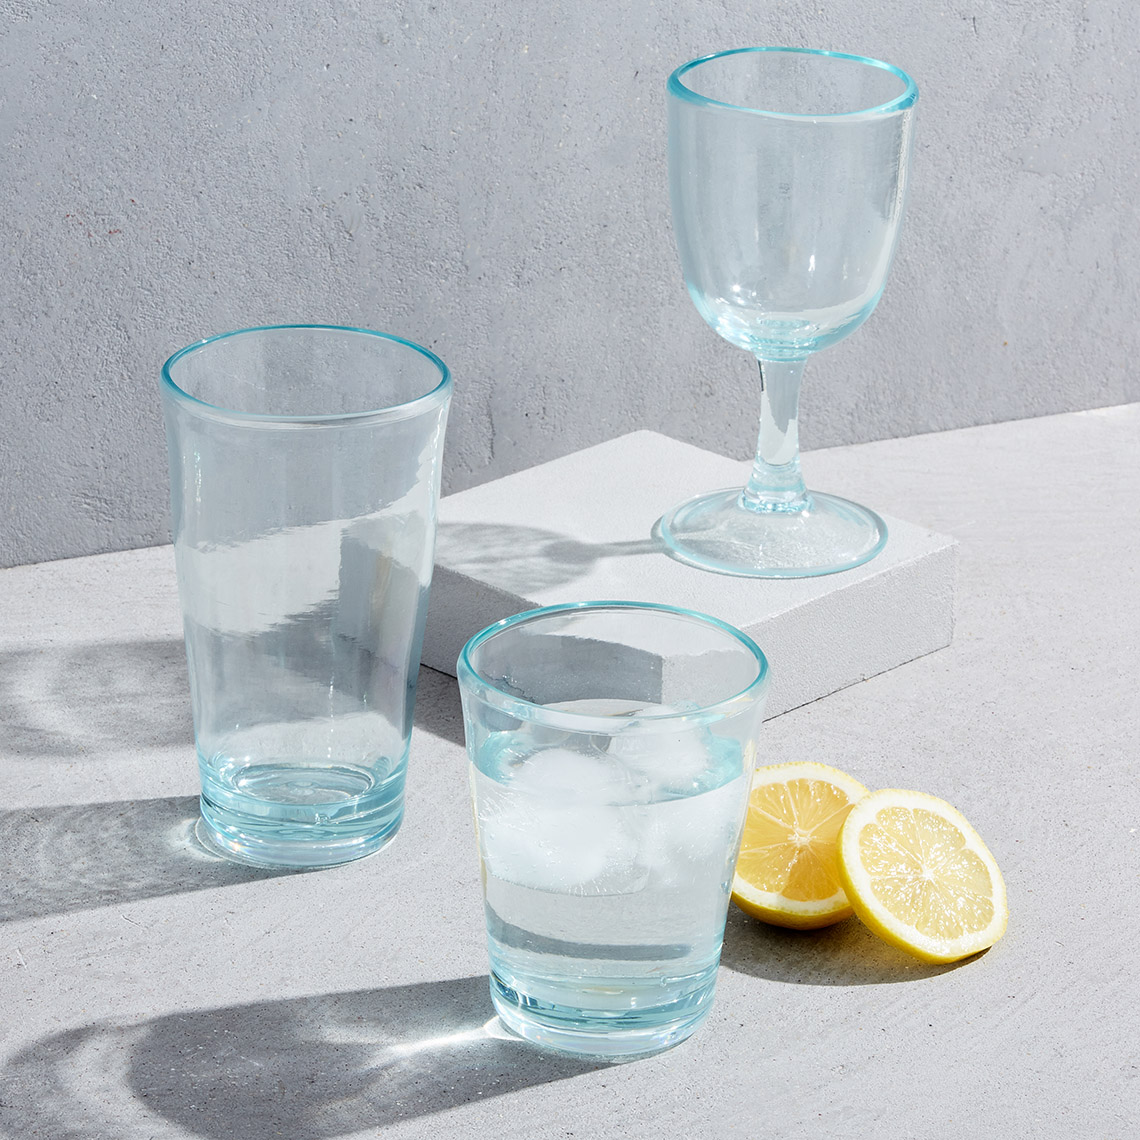 pip-acrylic-glassware-light-blue-group-su17-018